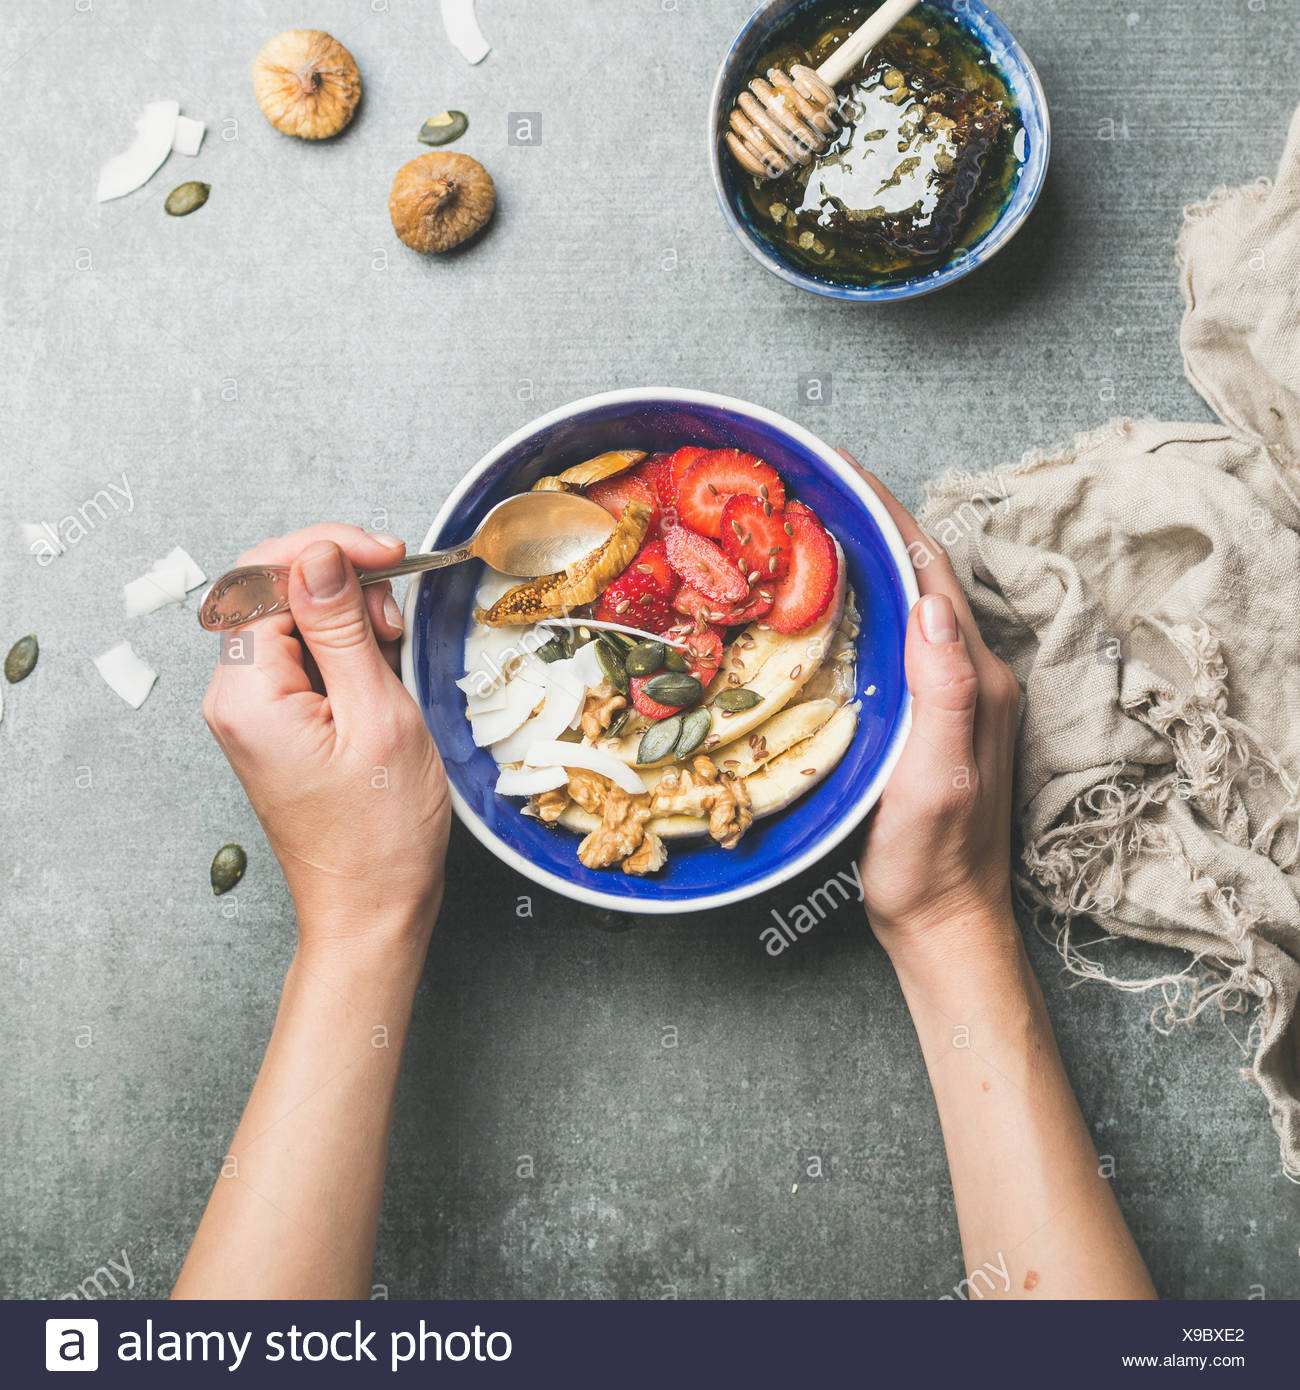 Yogurt, granola, seeds, fresh and dry fruit and honey in blue ceramic bowl in woman' s hands over grey concrete background, top view, square crop. Cle - Stock Image